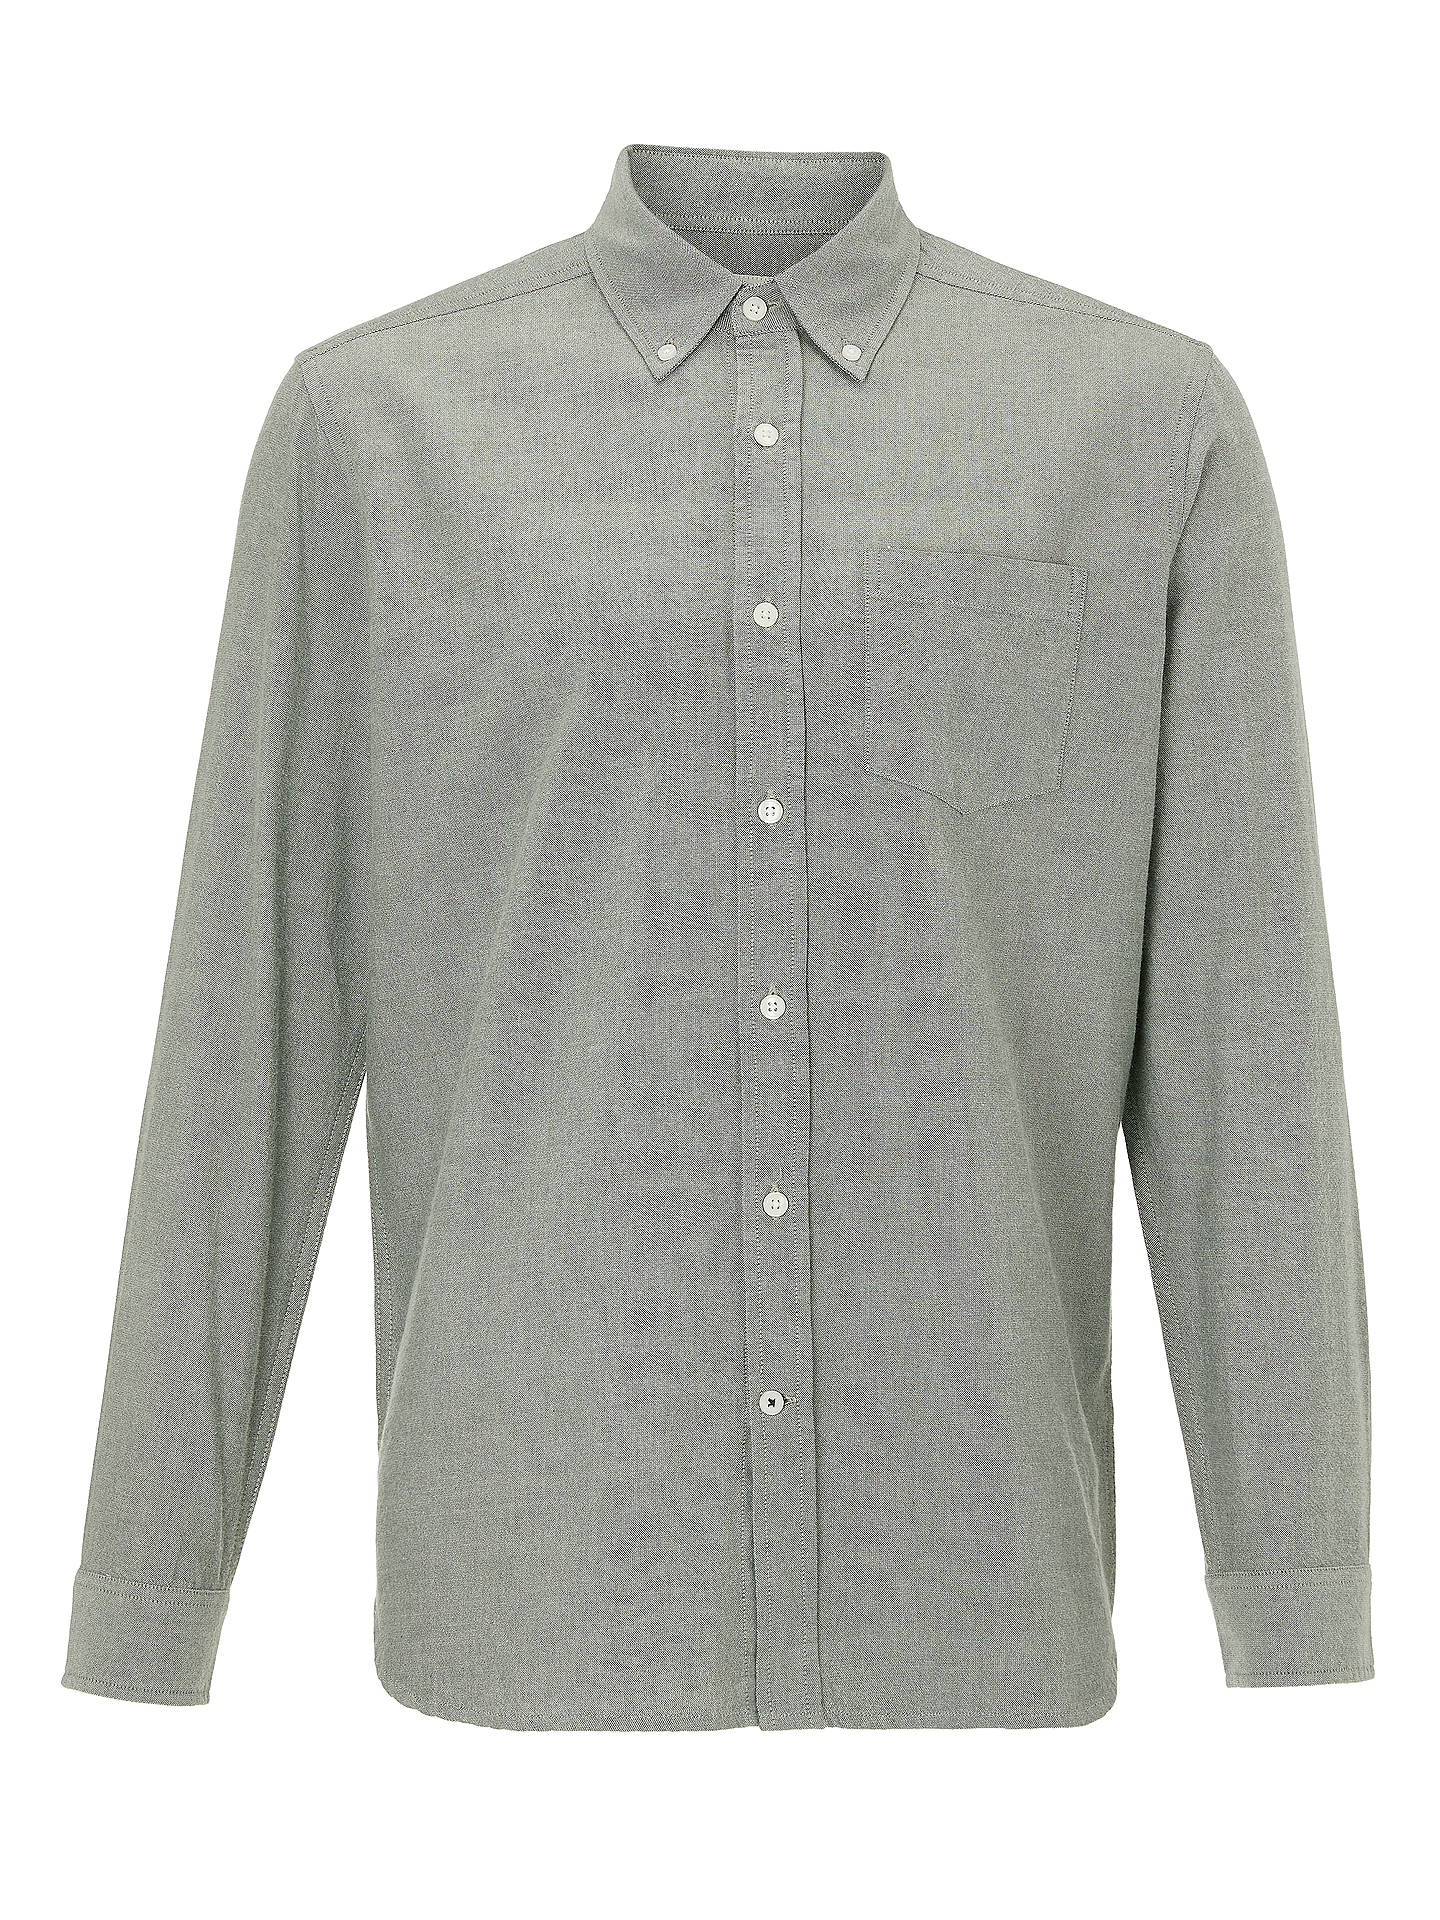 BuyJohn Lewis & Partners Cotton Oxford Shirt, Ivy, S Online at johnlewis.com